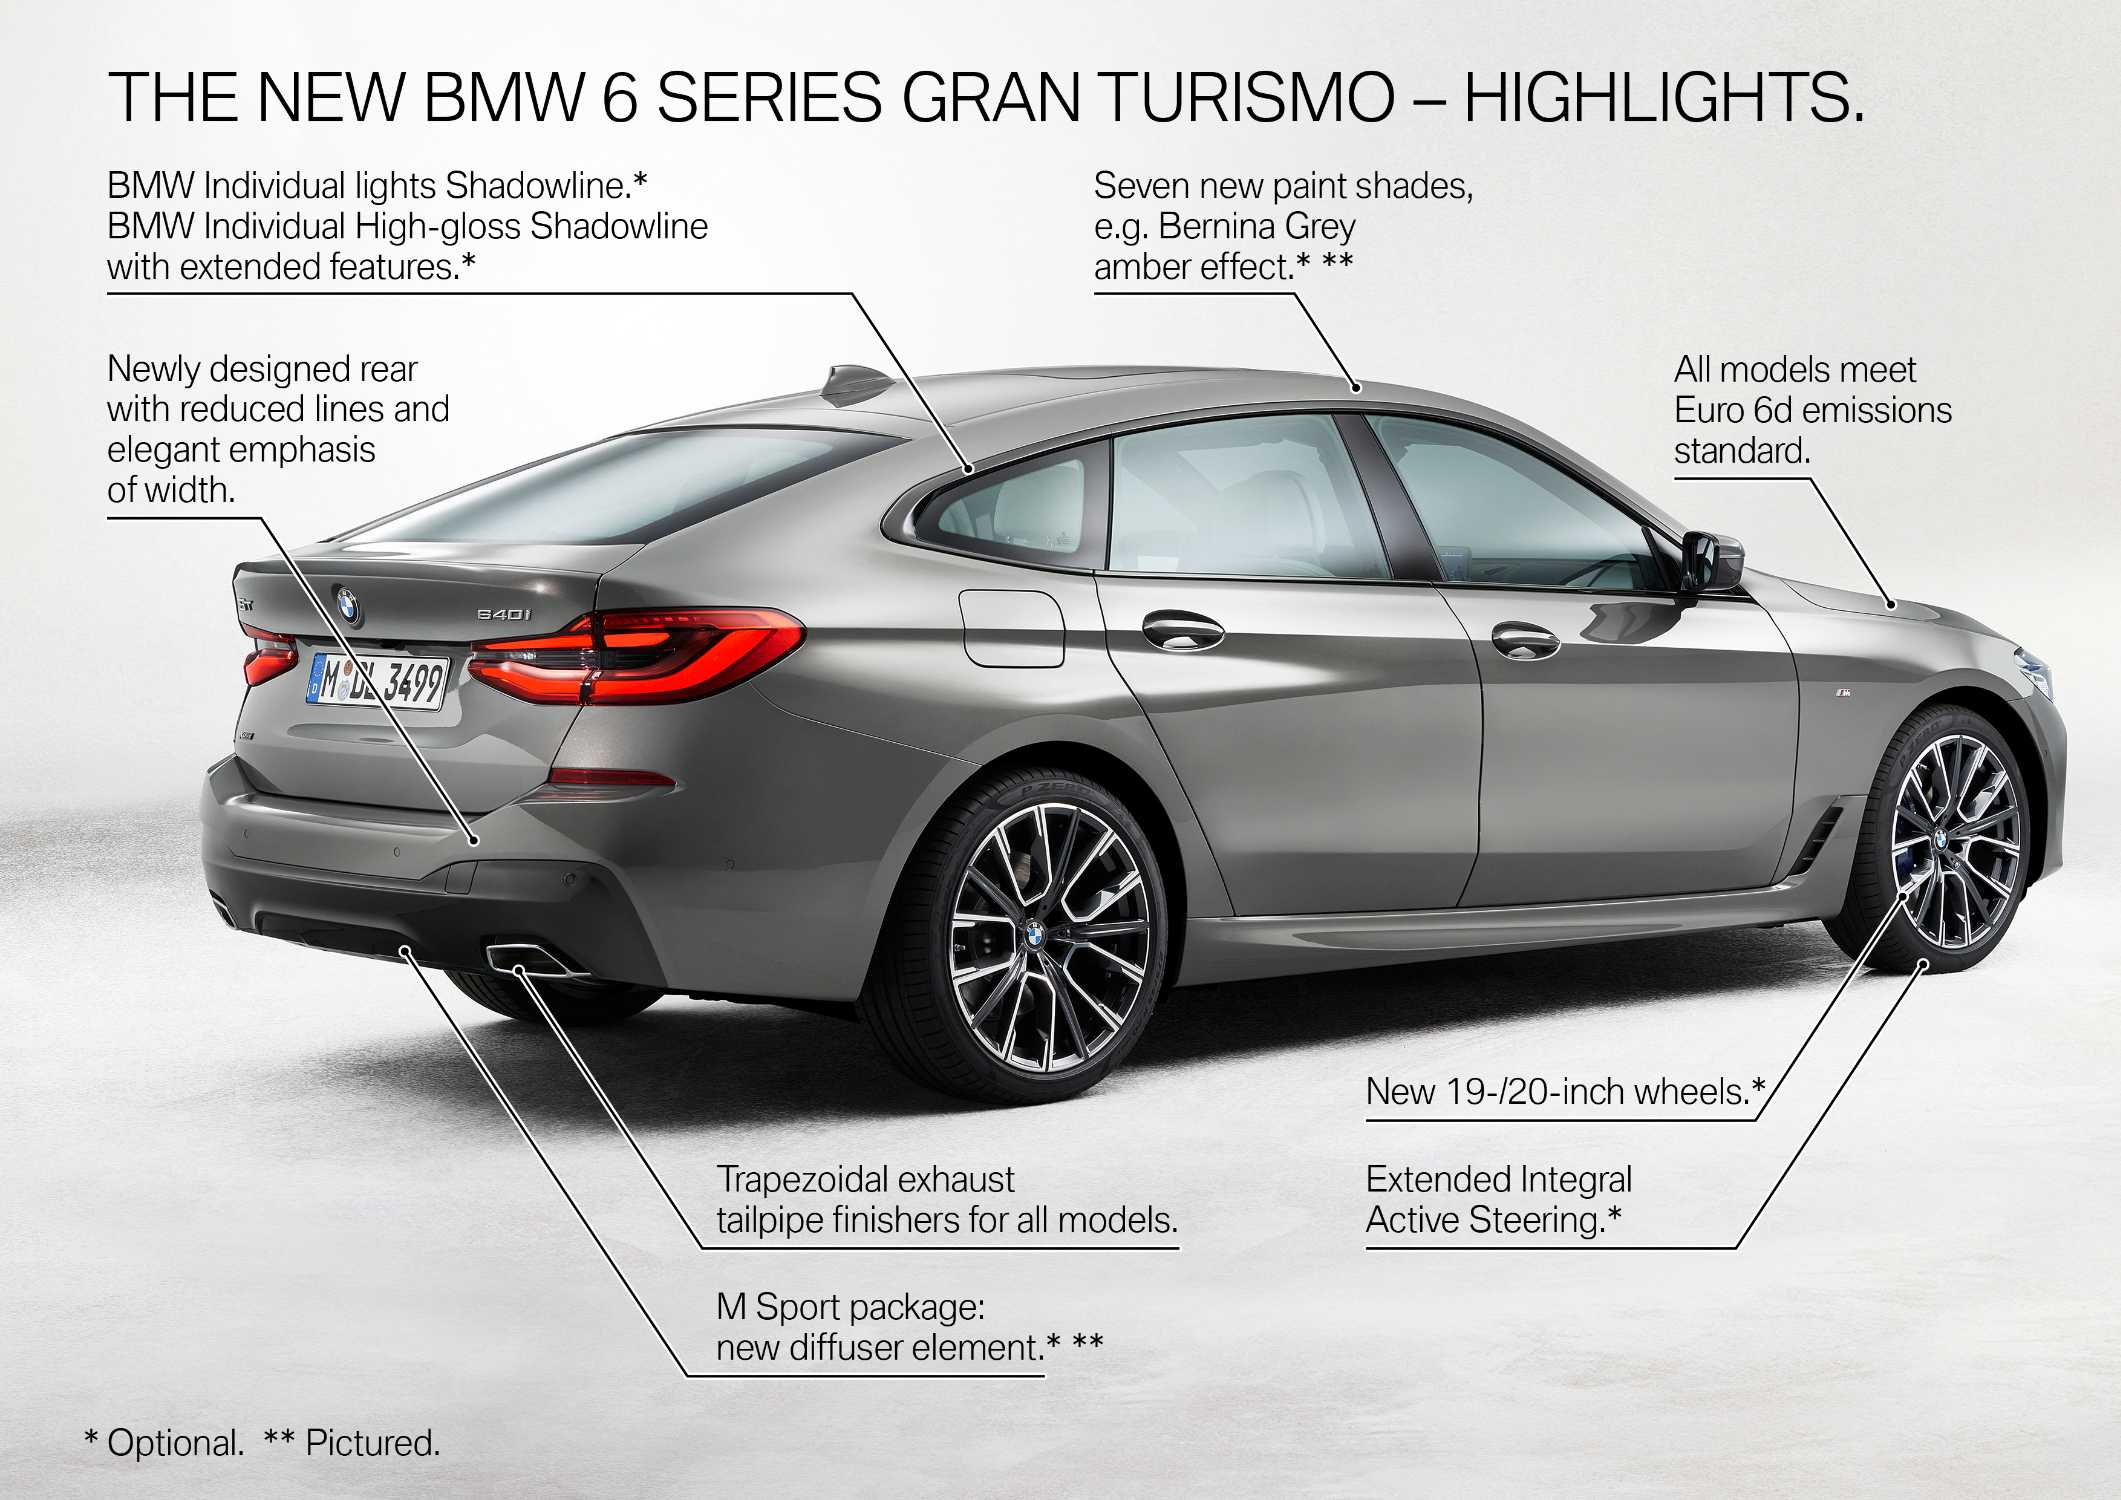 The new BMW 6 Series Gran Turismo - Highlights (05/2020).